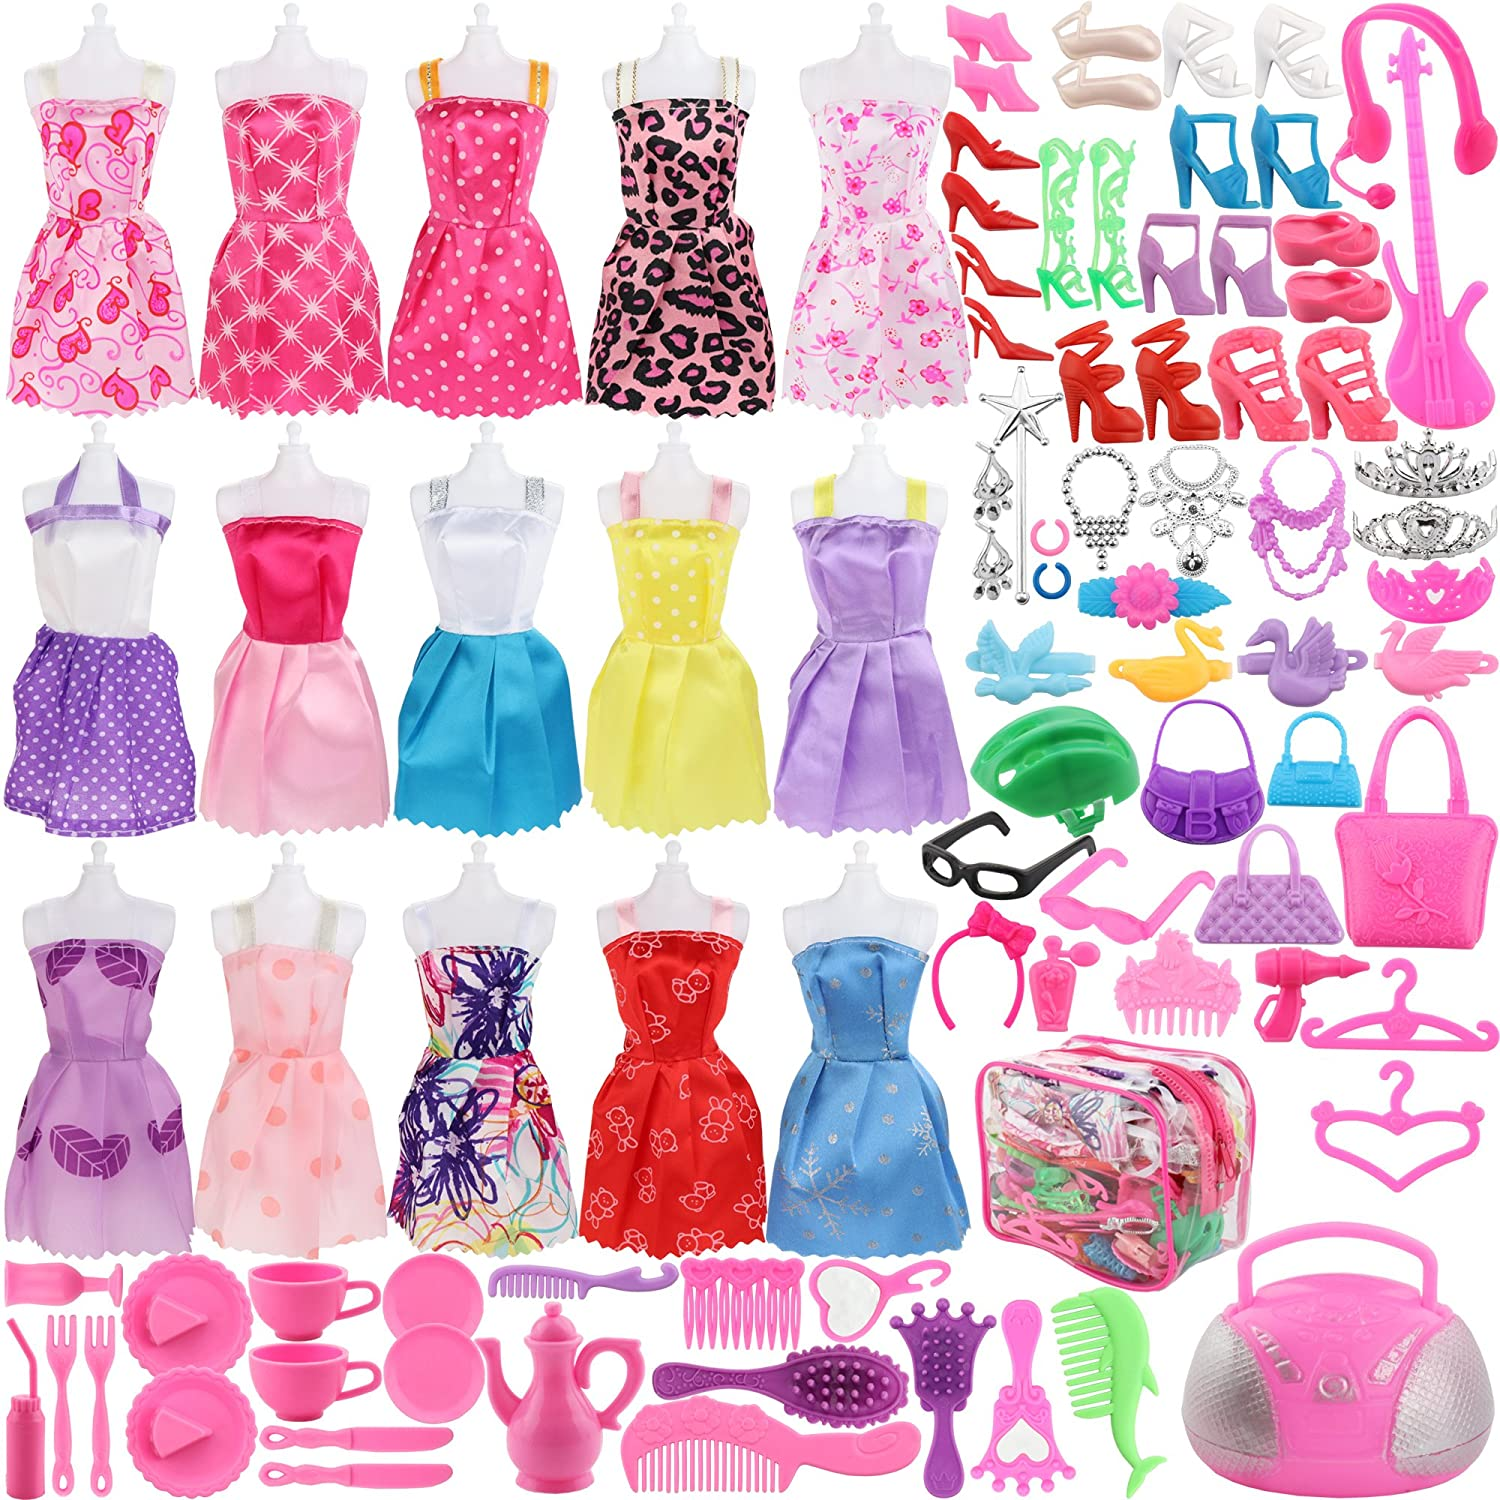 SOTOGO 106 Pcs Doll Clothes Set for Barbie Dolls Include 15 Pack Clothes Party Grown Outfits and 90 Pcs Different Doll Accessories for Little Girl